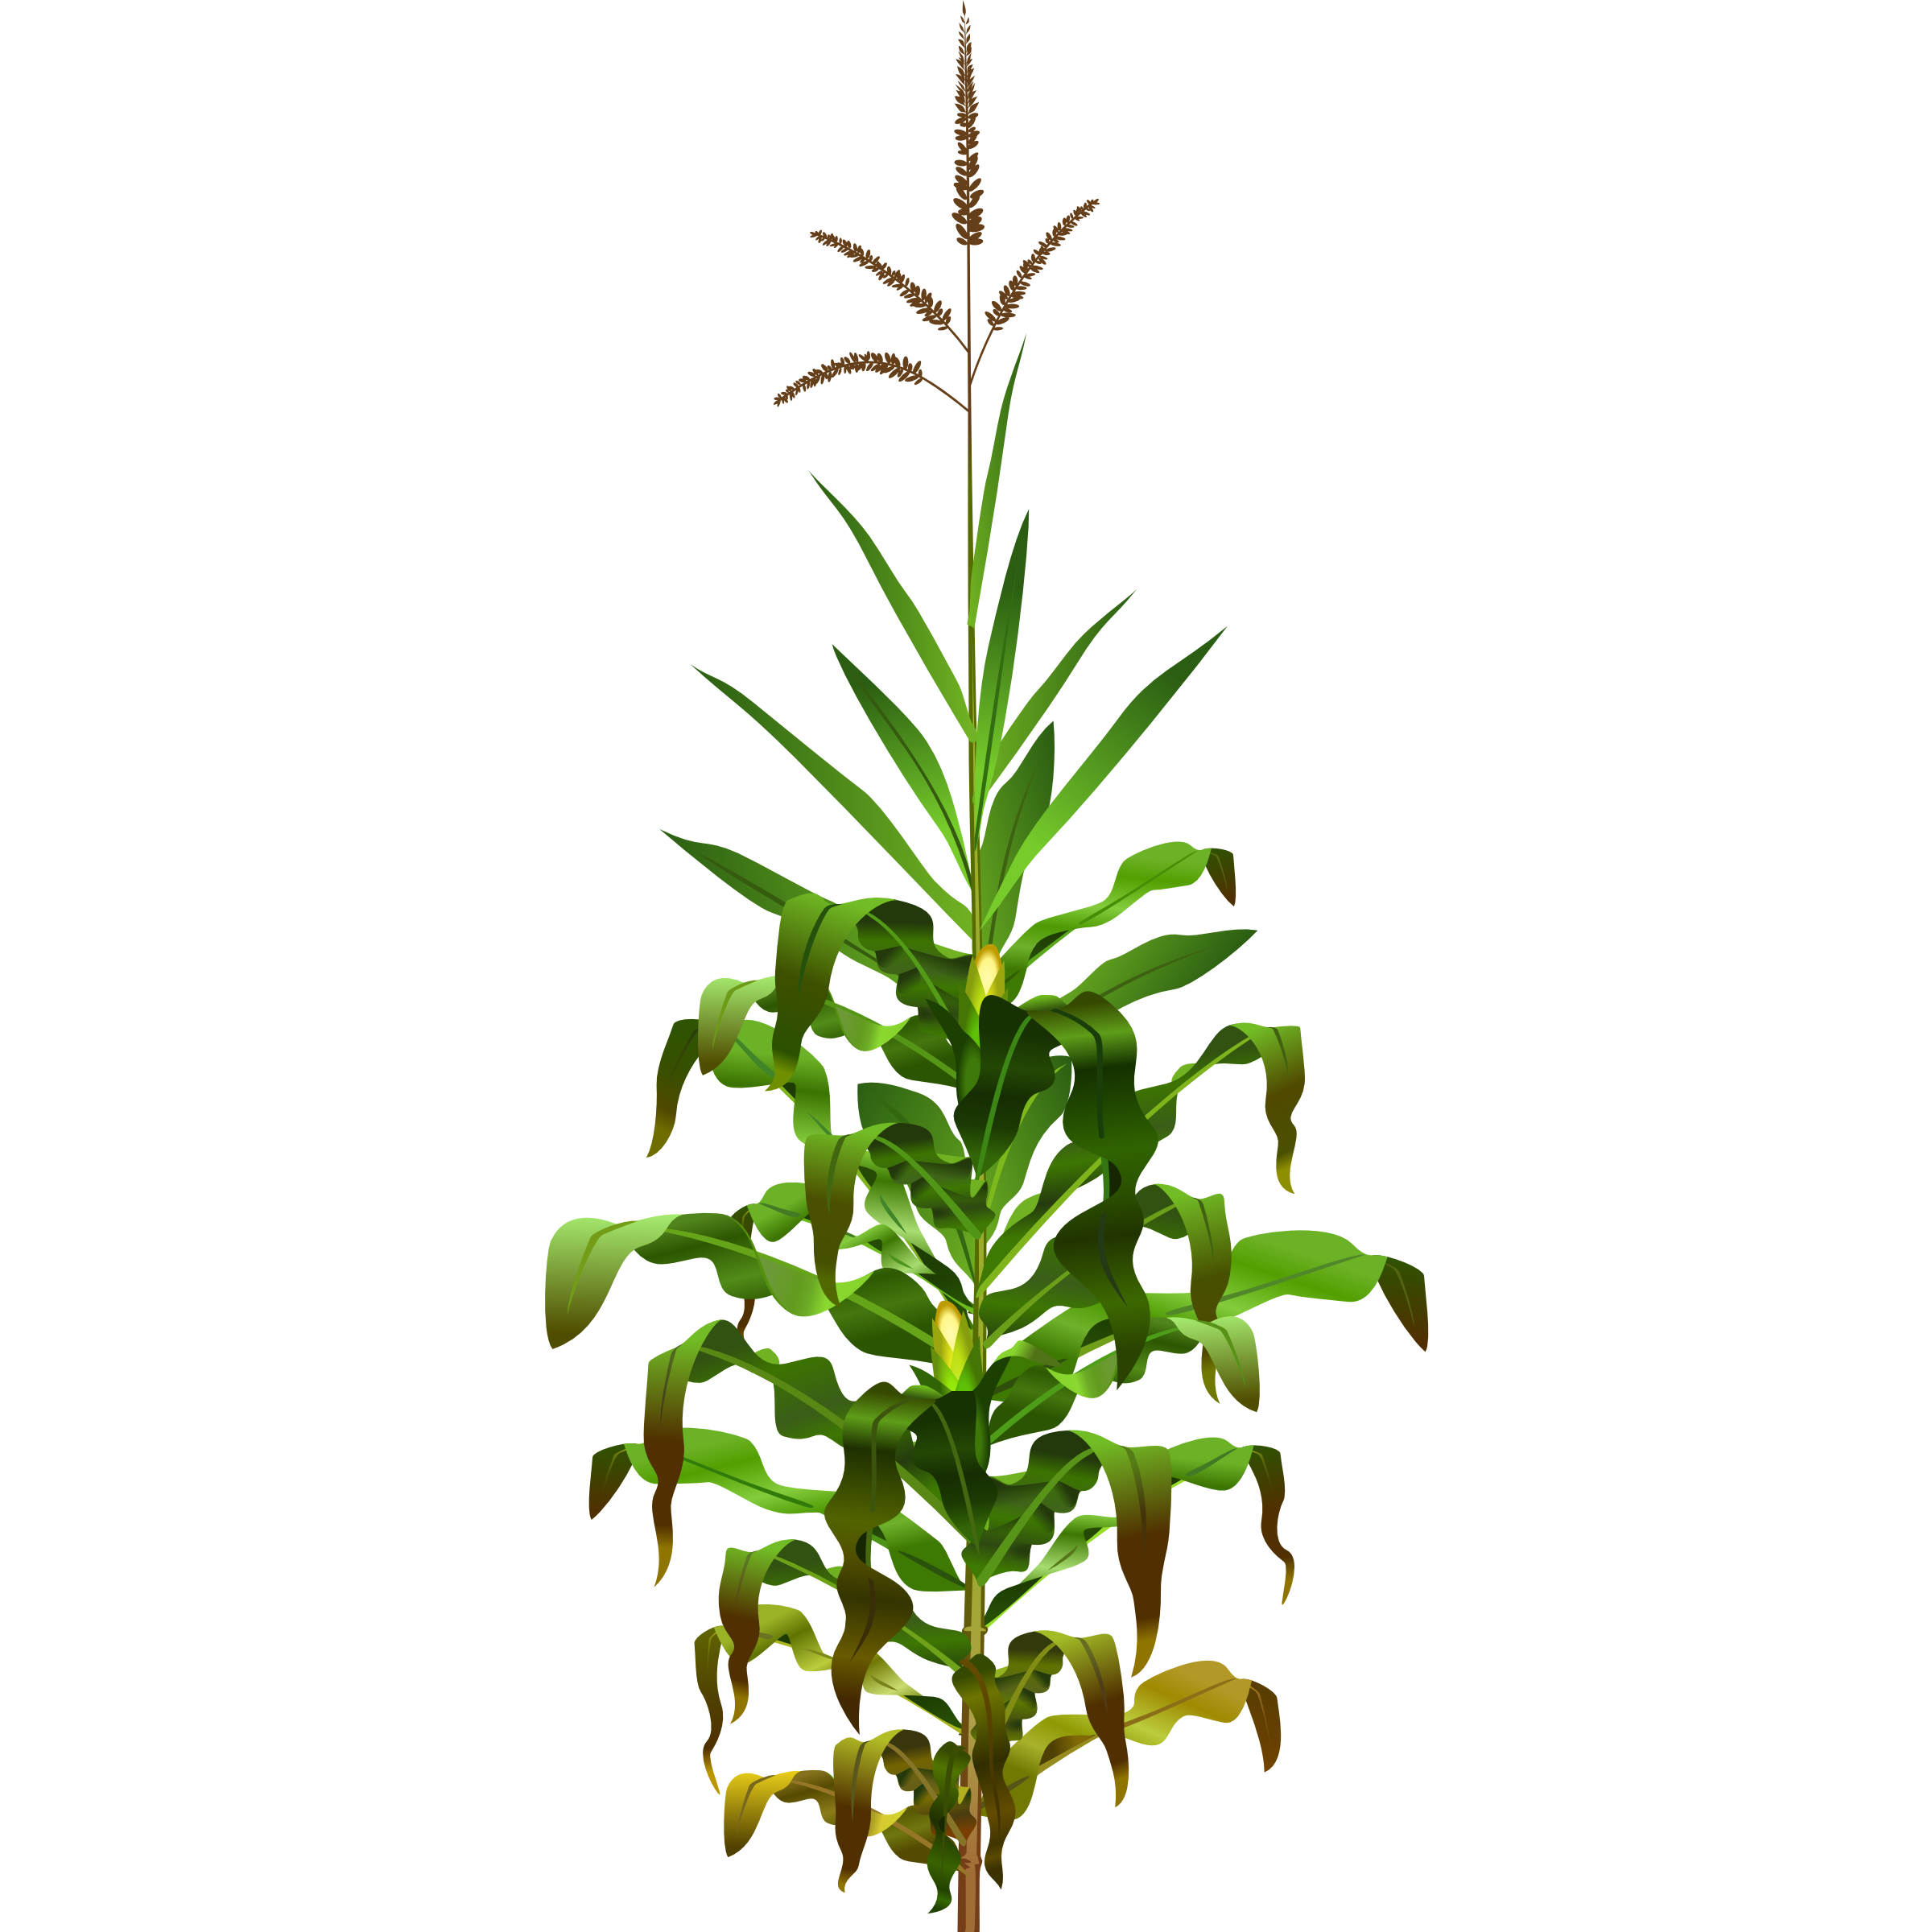 Cornfield drawing corn plant. Field clipart at getdrawings